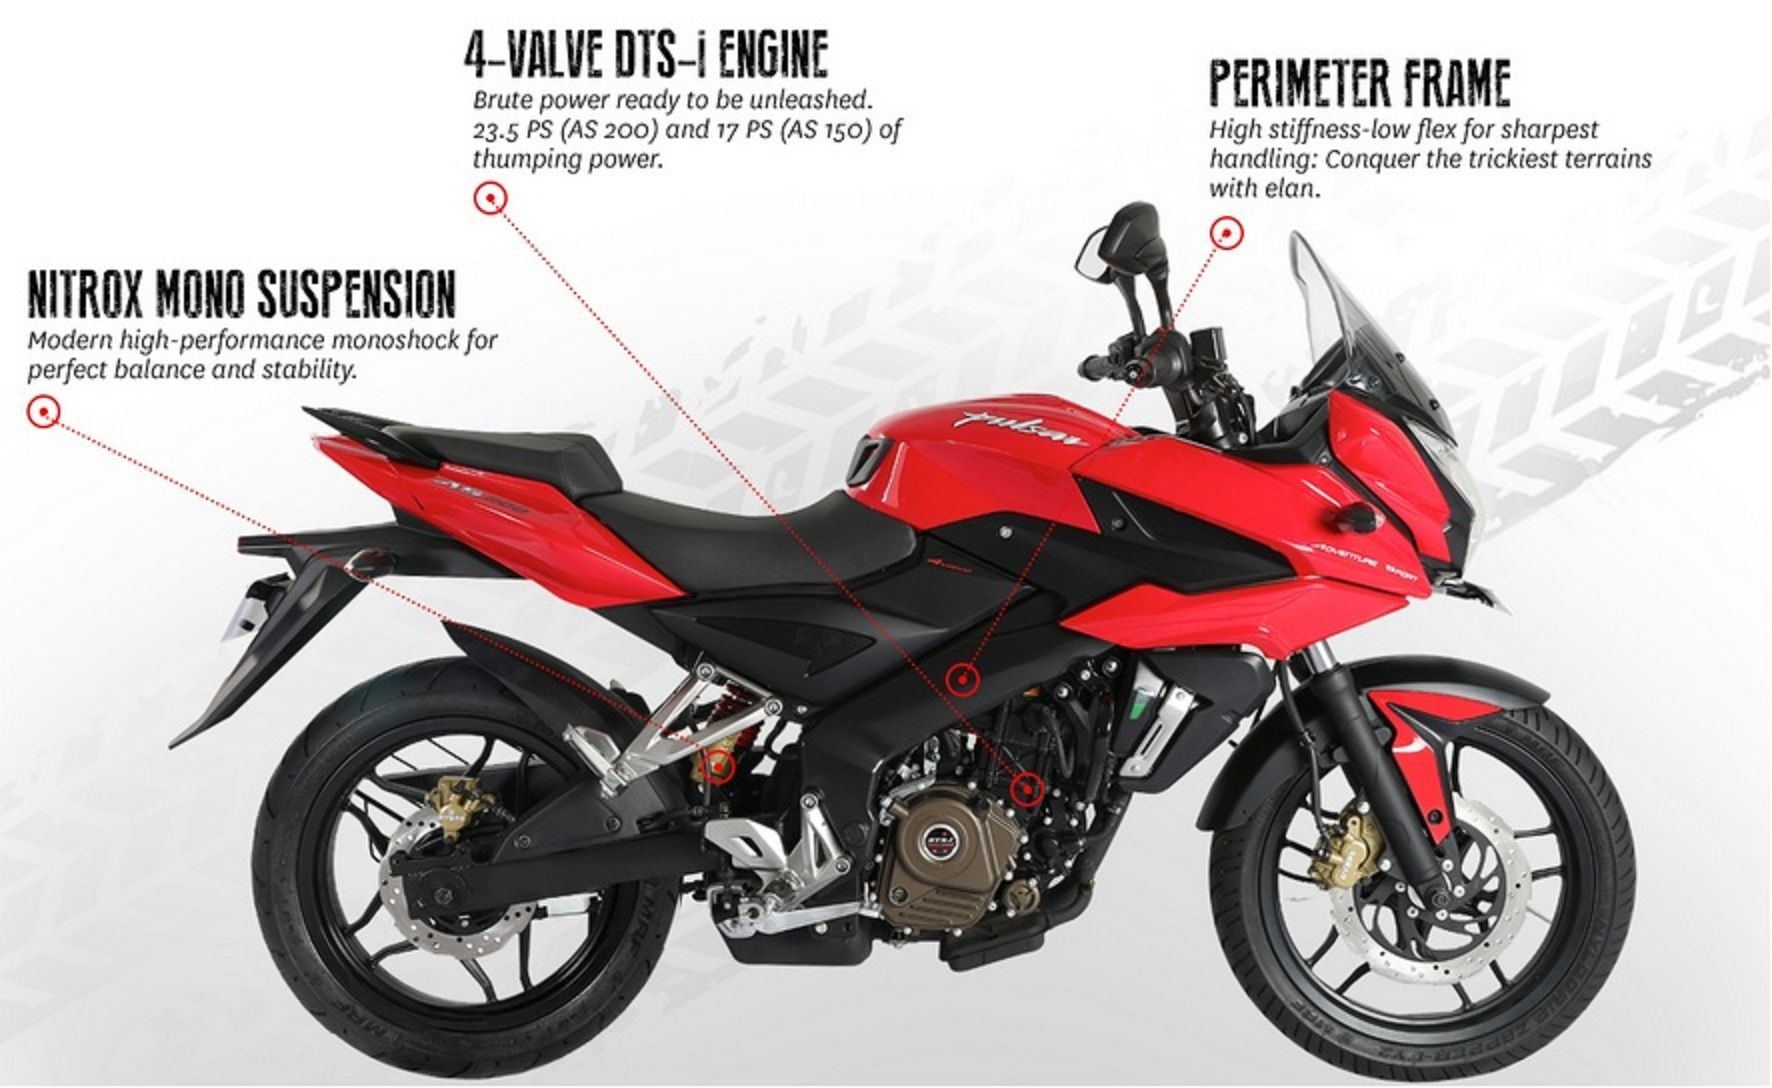 Bajaj Pulsar AS 200 bike adventure